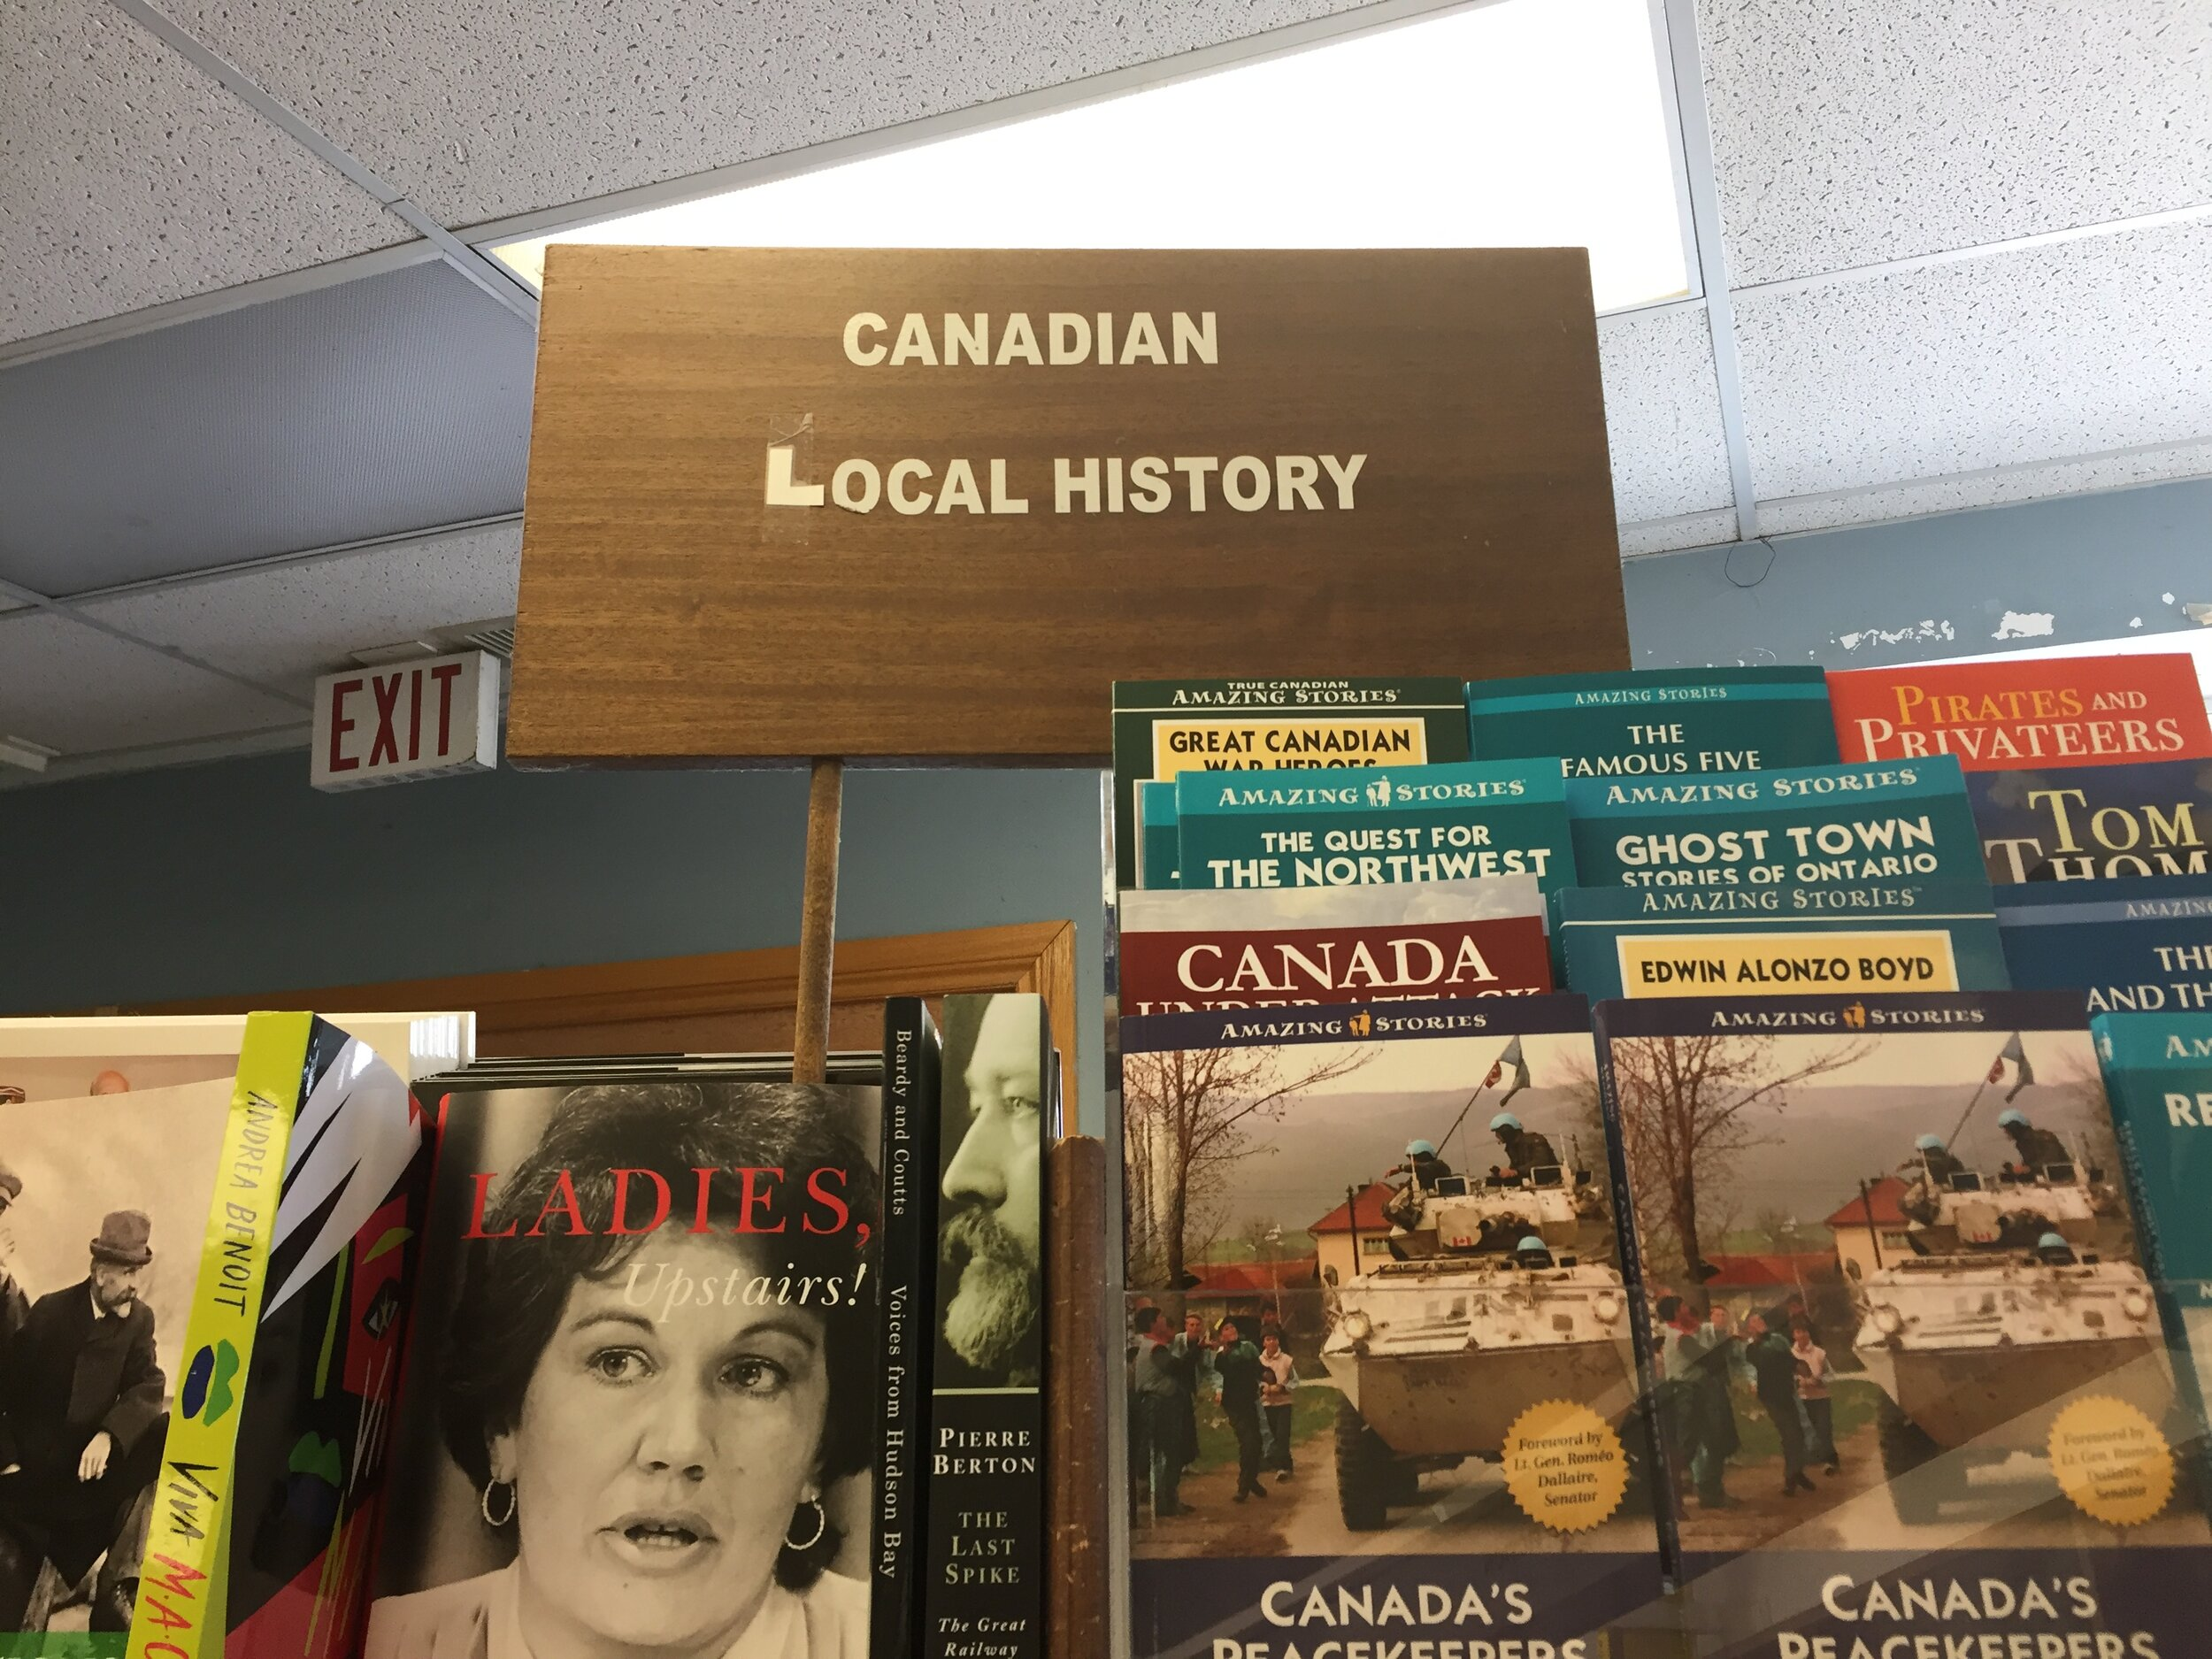 [image description: The Canadian Local History section at Novel Idea.]